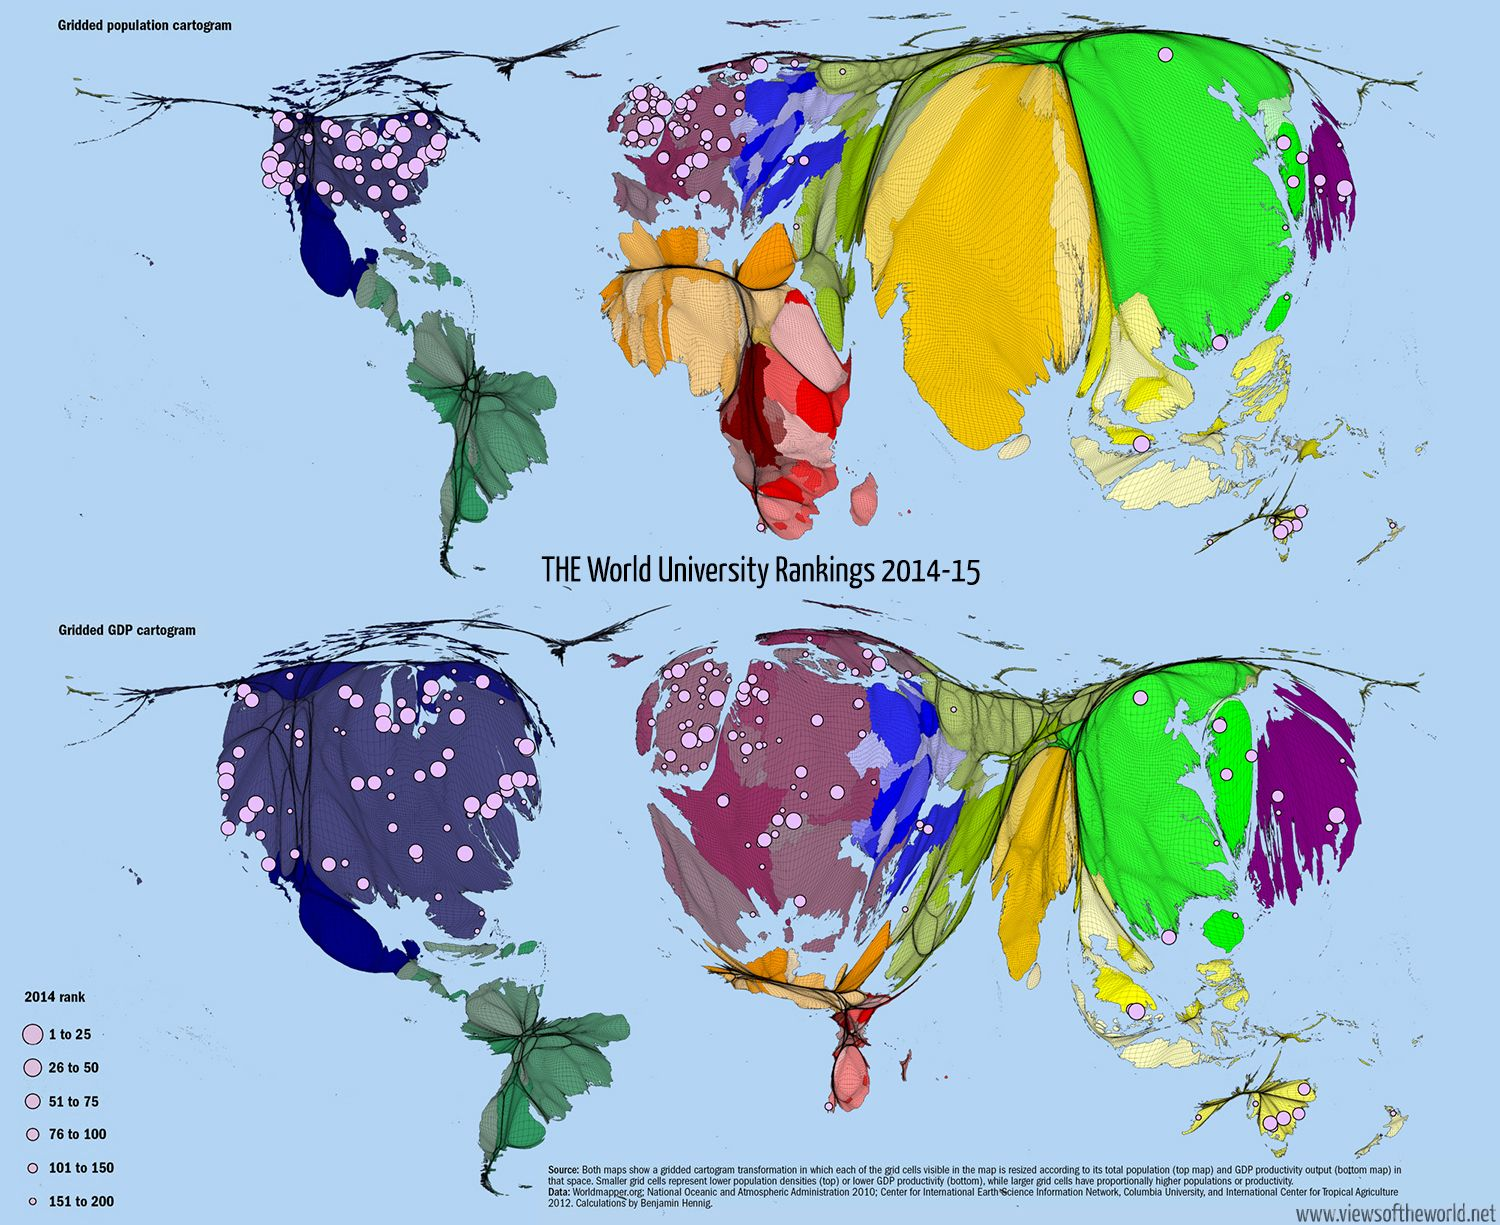 THE World University Ranking Maps Map Pinterest The World - Map of us gdp countries